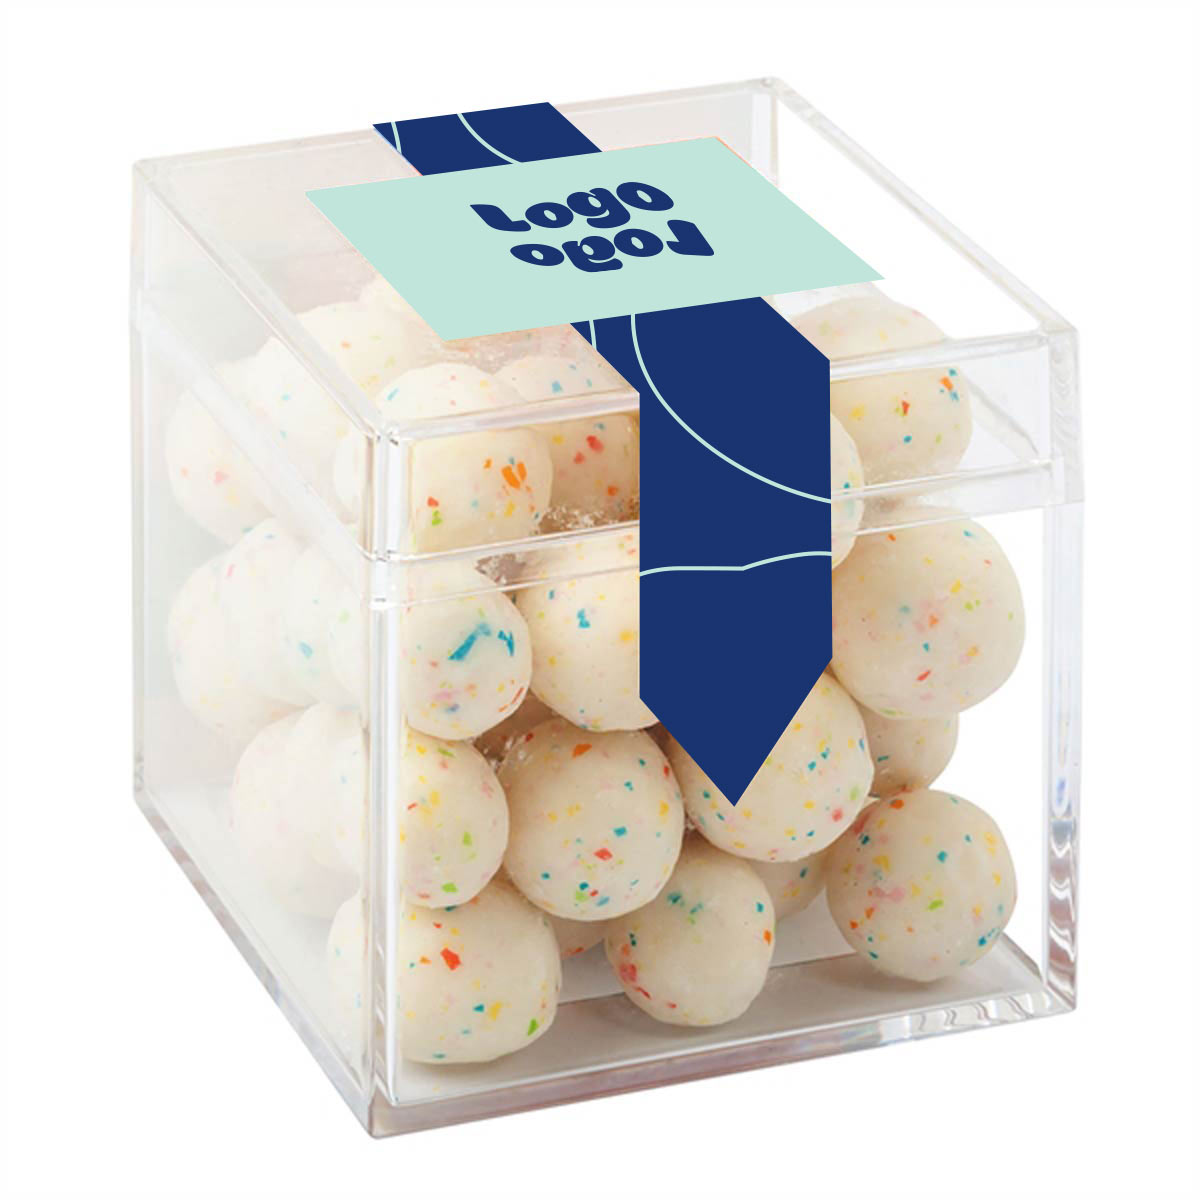 269651 birthday cake bites box full color label